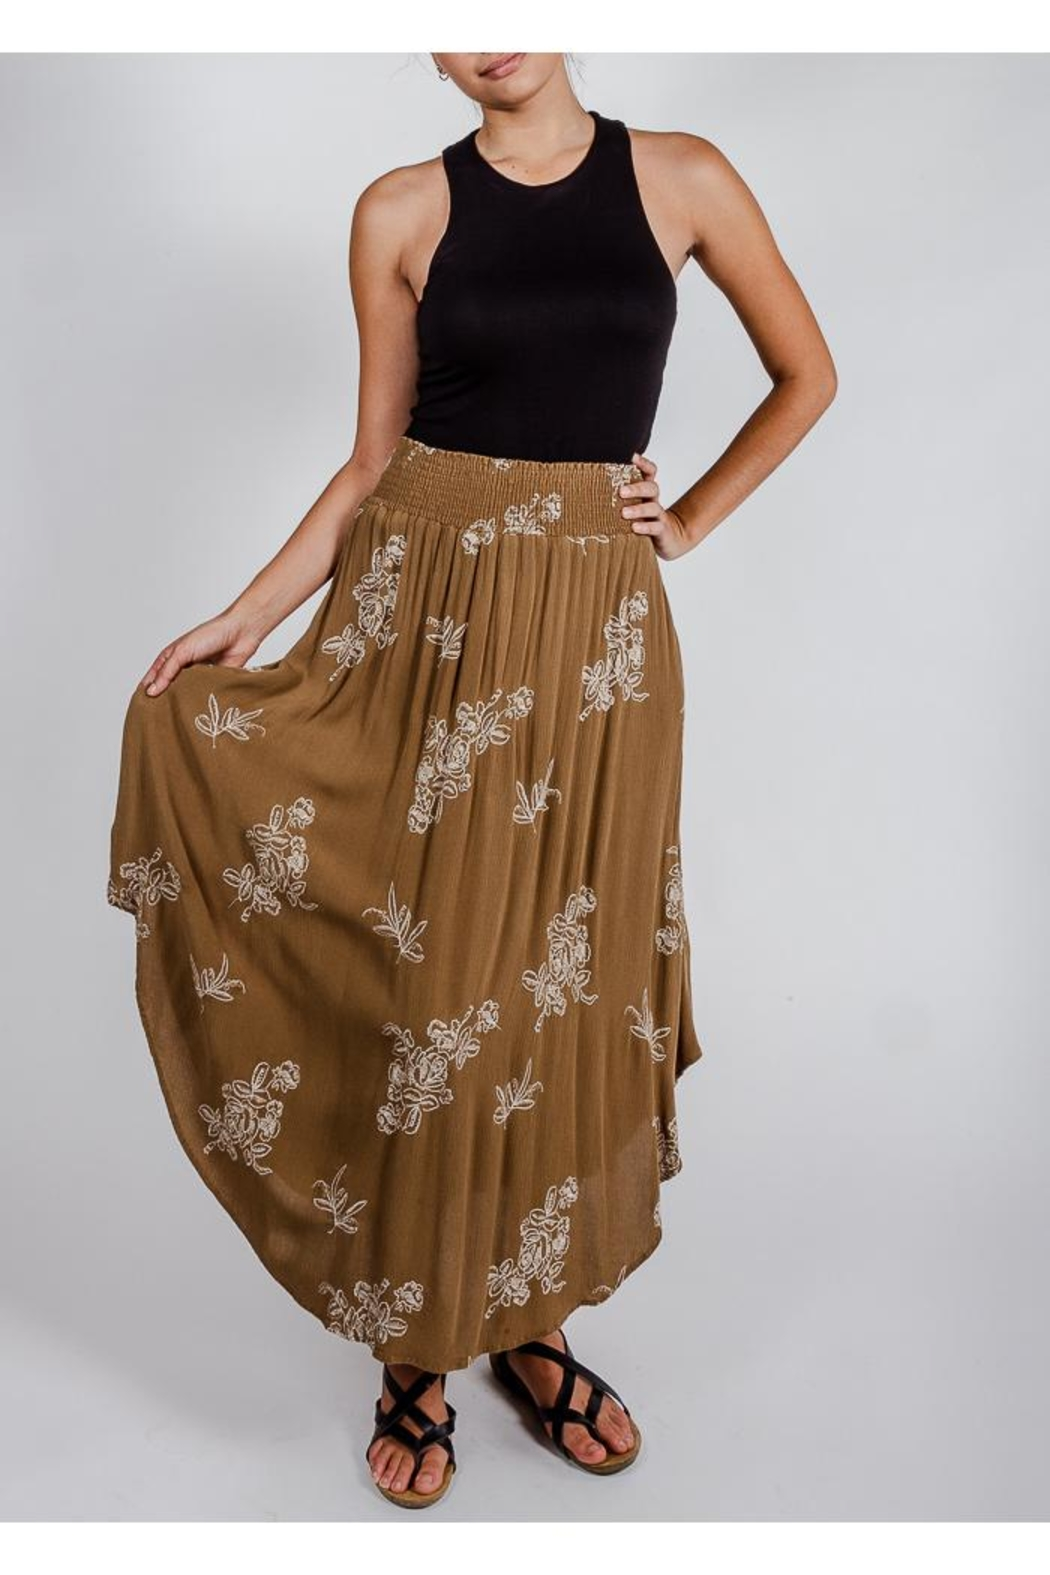 Final Touch Olive Floral Midi-Skirt - Main Image